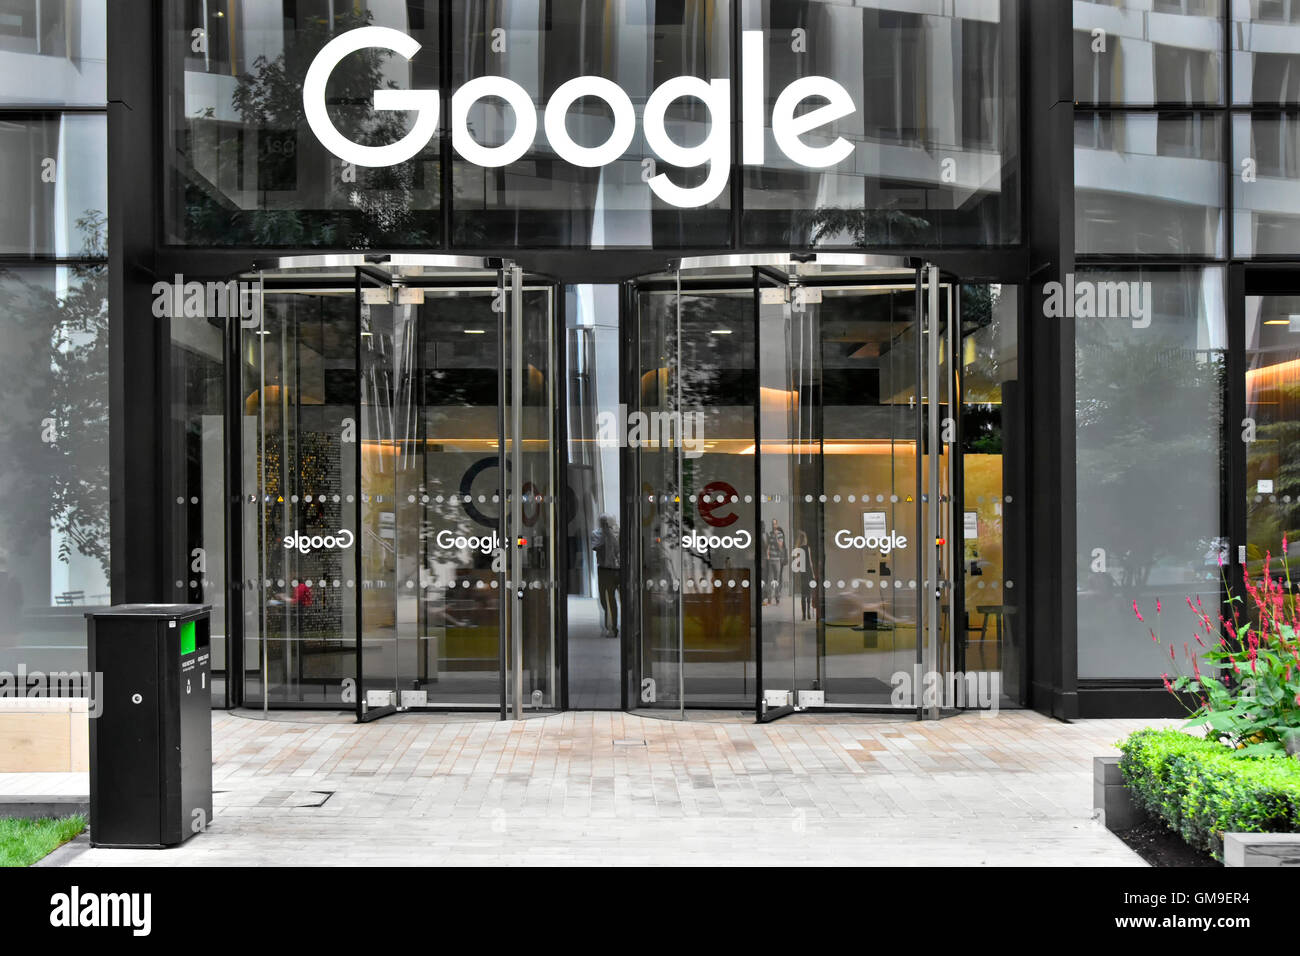 Google offices london photos google offices london images alamy